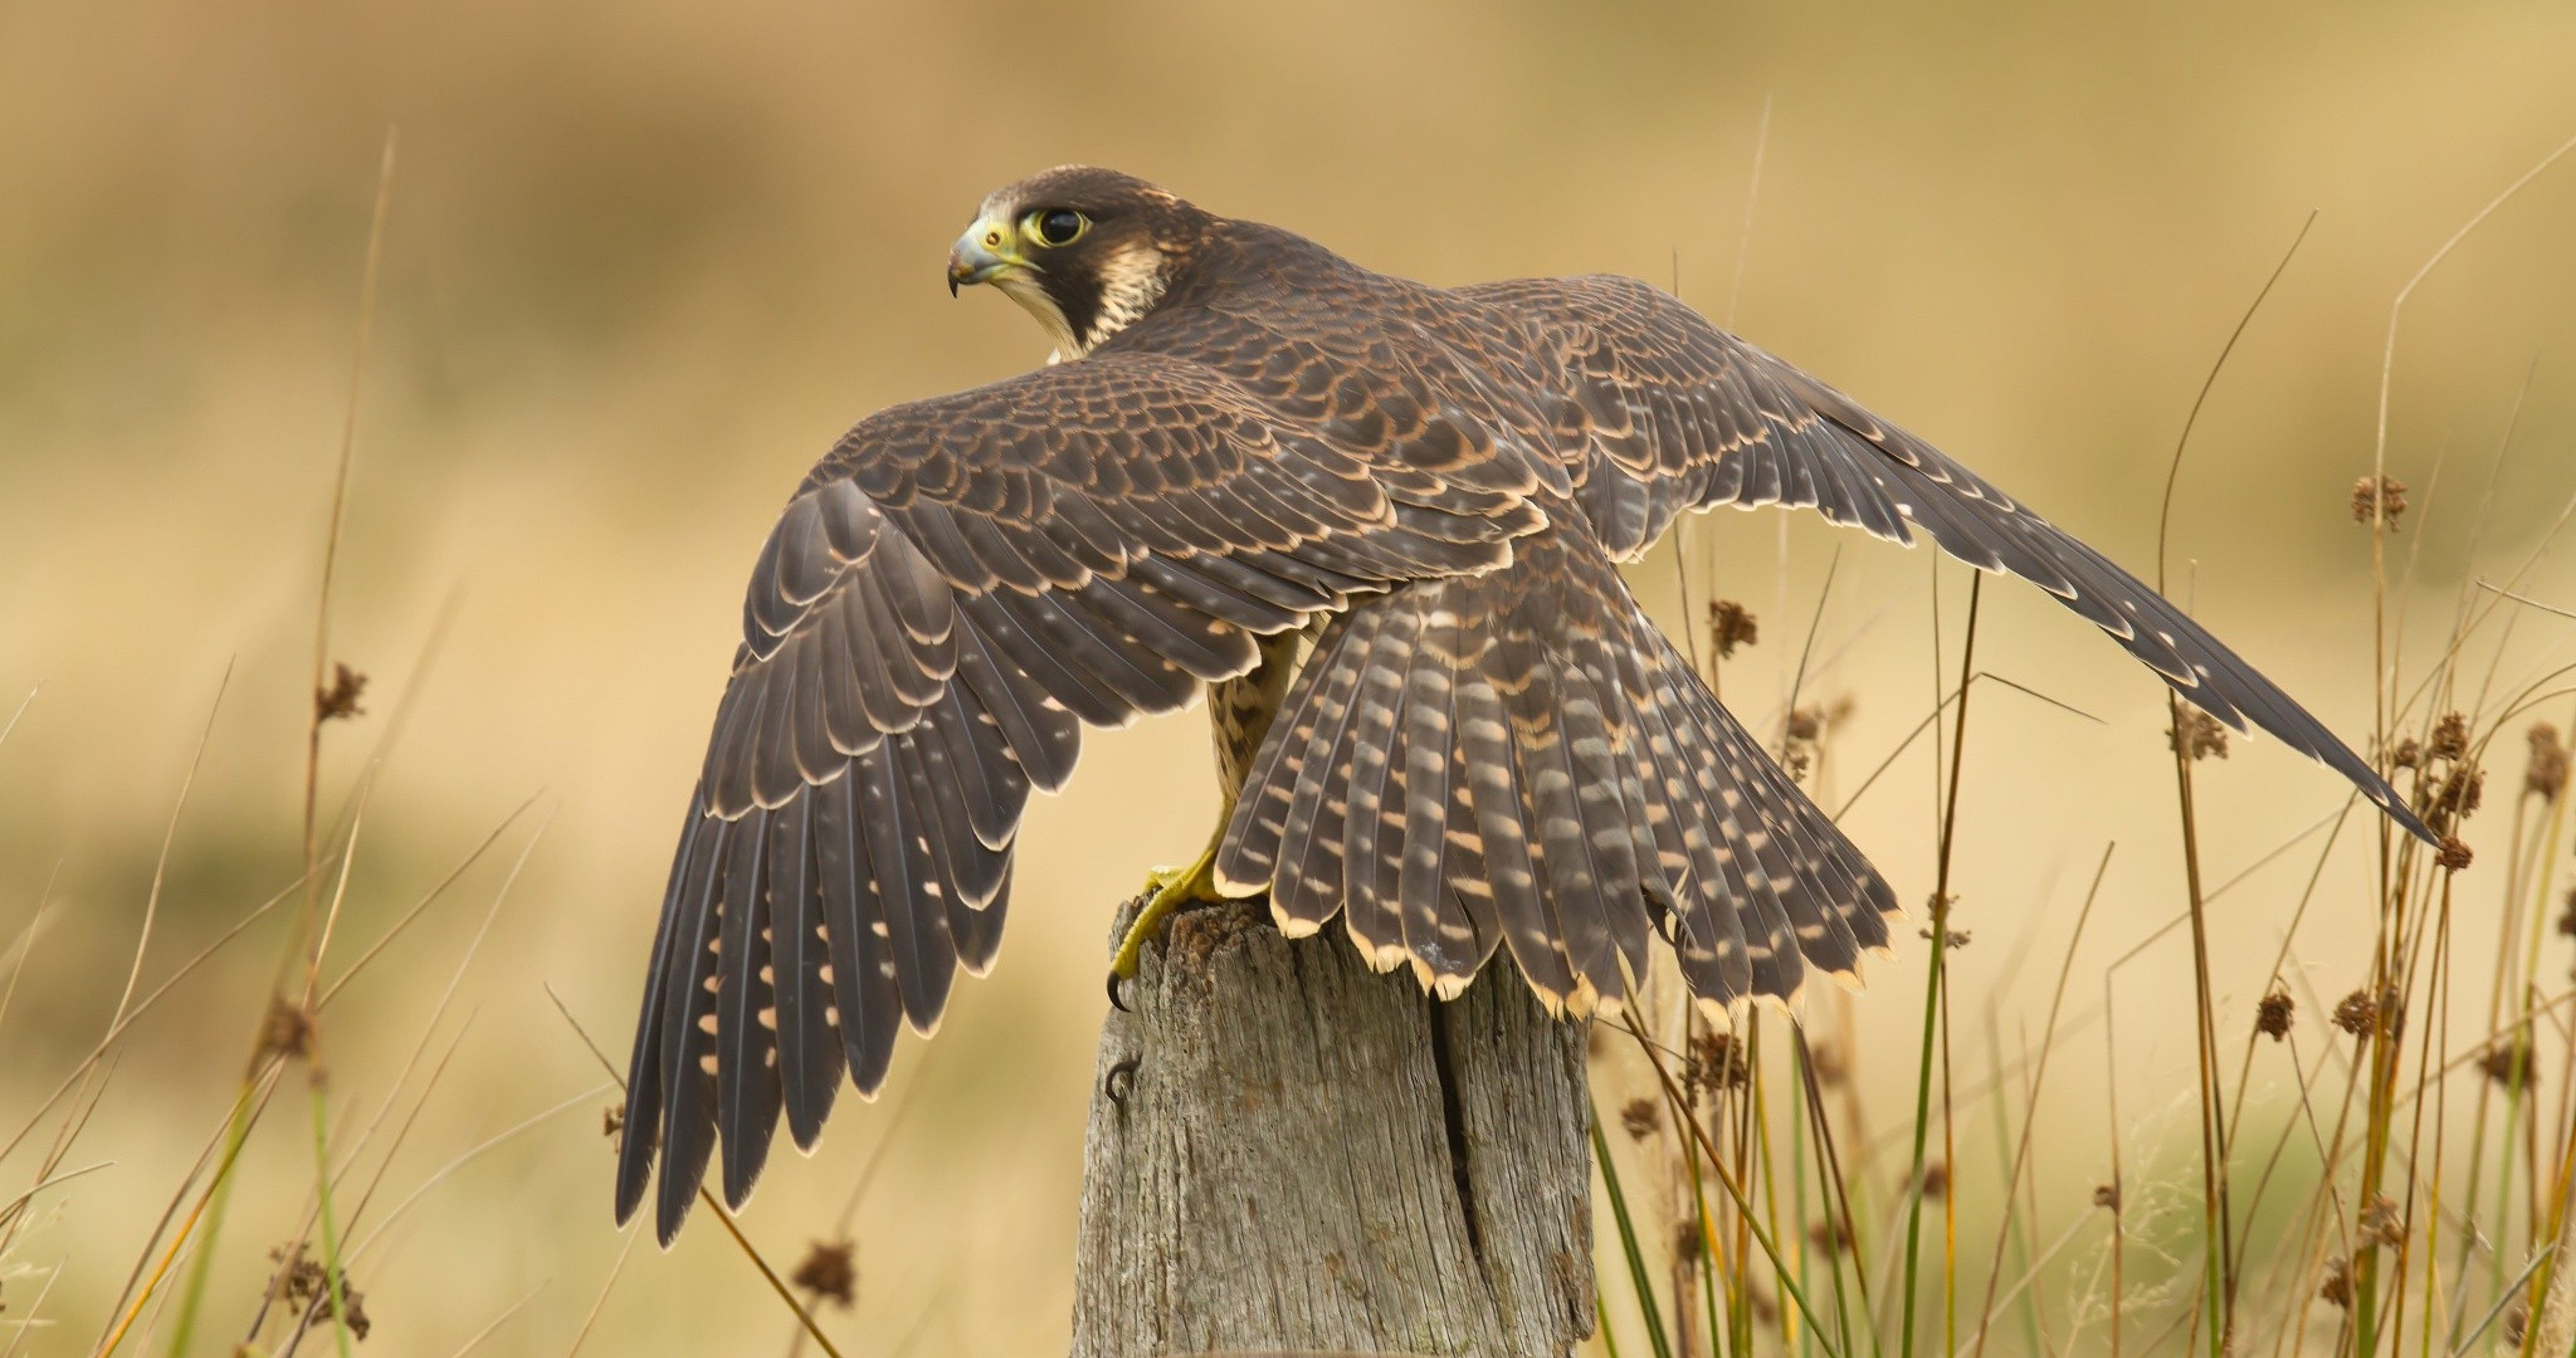 Falcon High Resolution Wallpapers: Peregrine Falcon Wallpapers High Quality Resolution